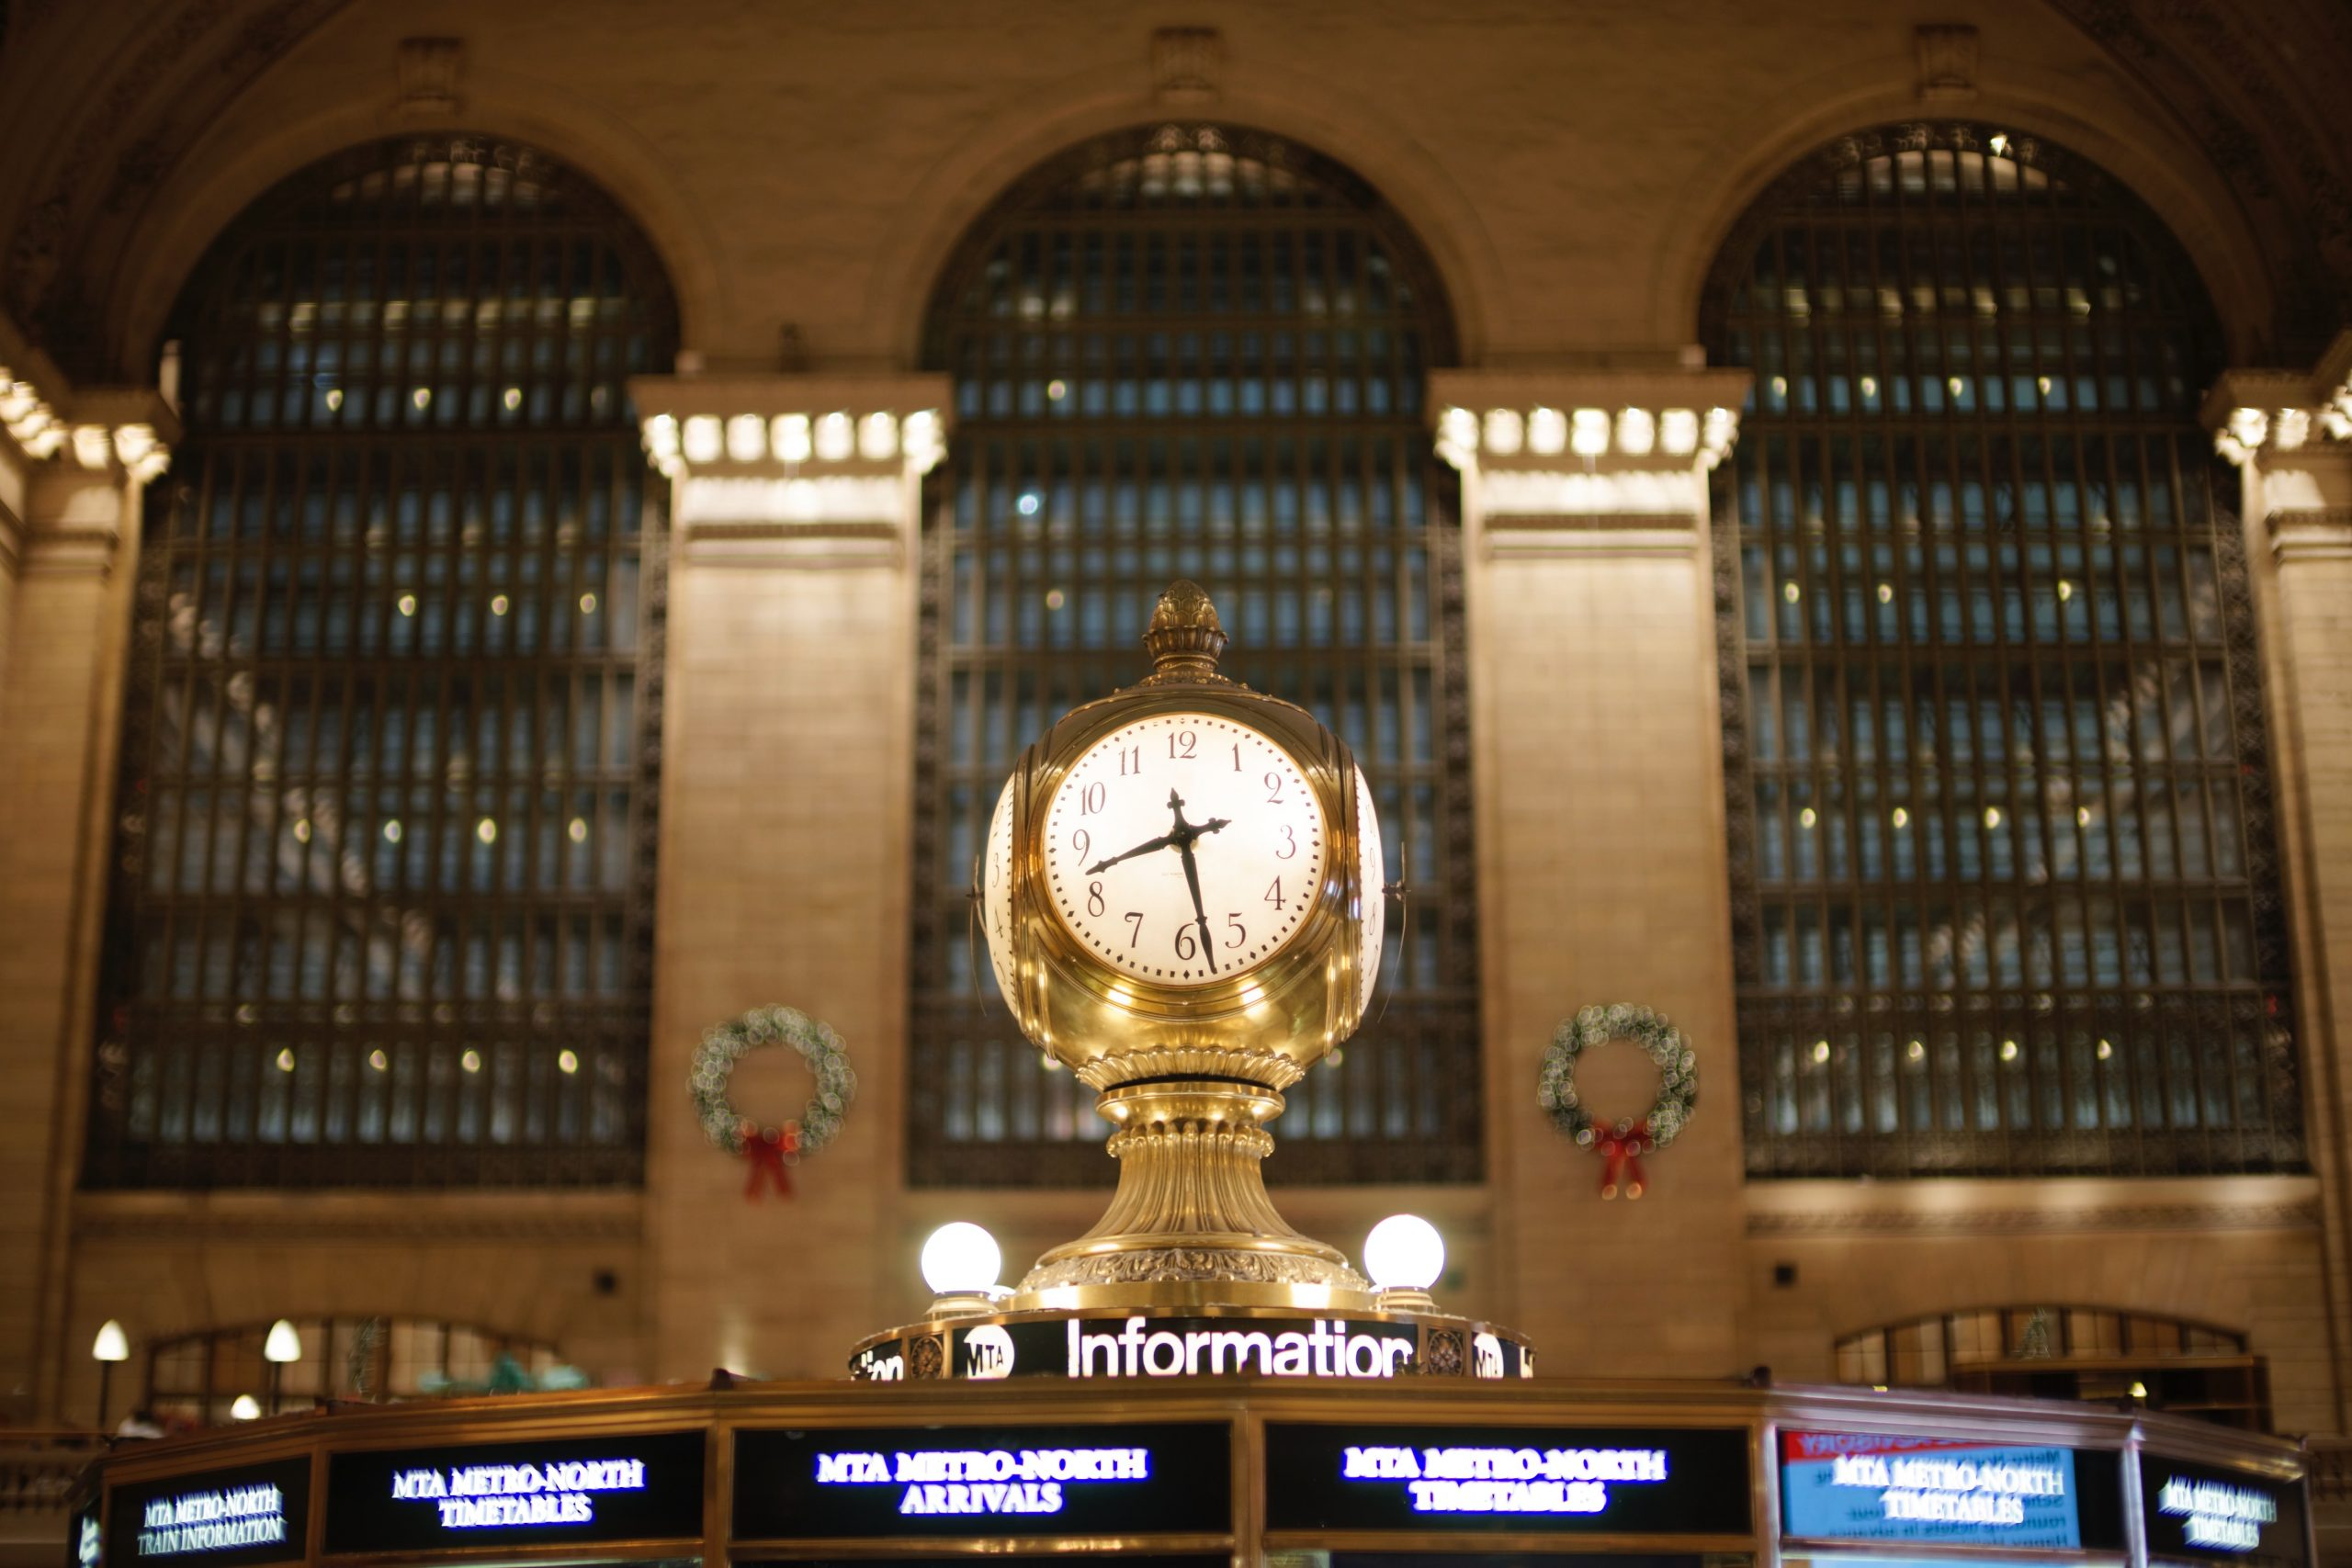 The clock inside the Main Concourse